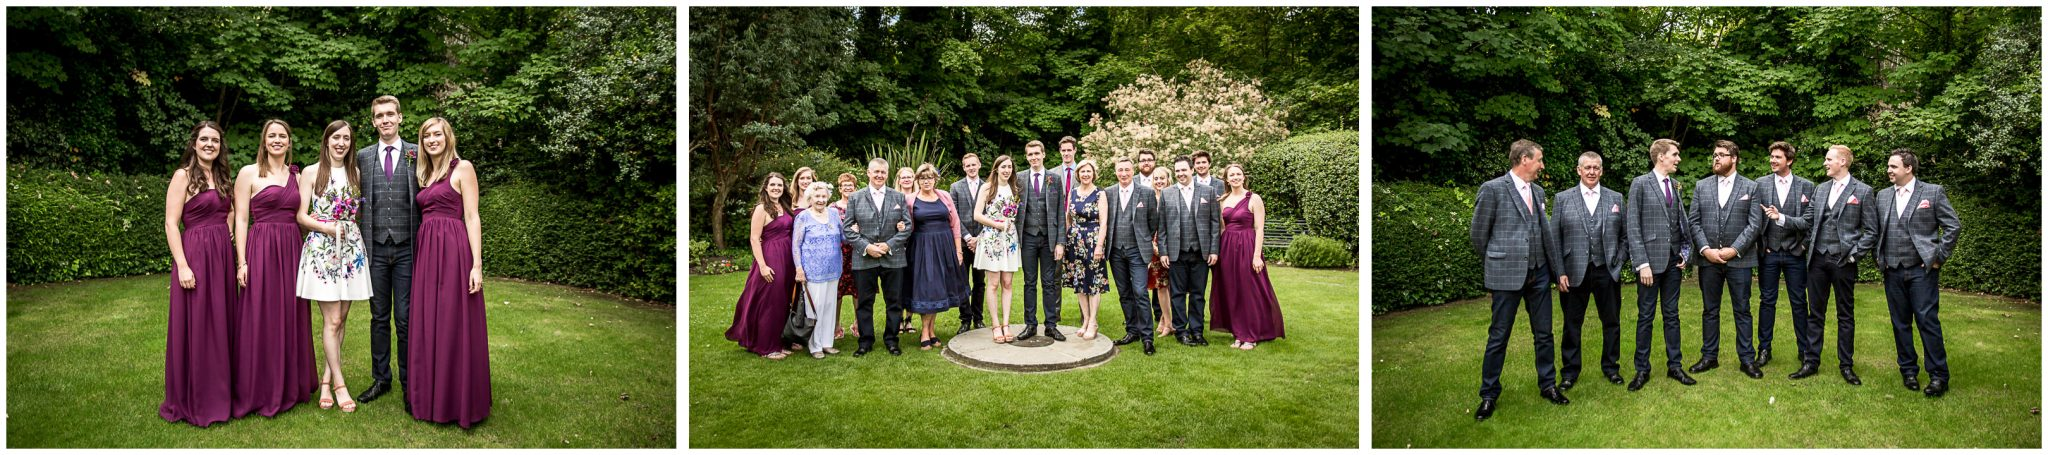 Portsmouth Registry Office wedding group photos in gardens